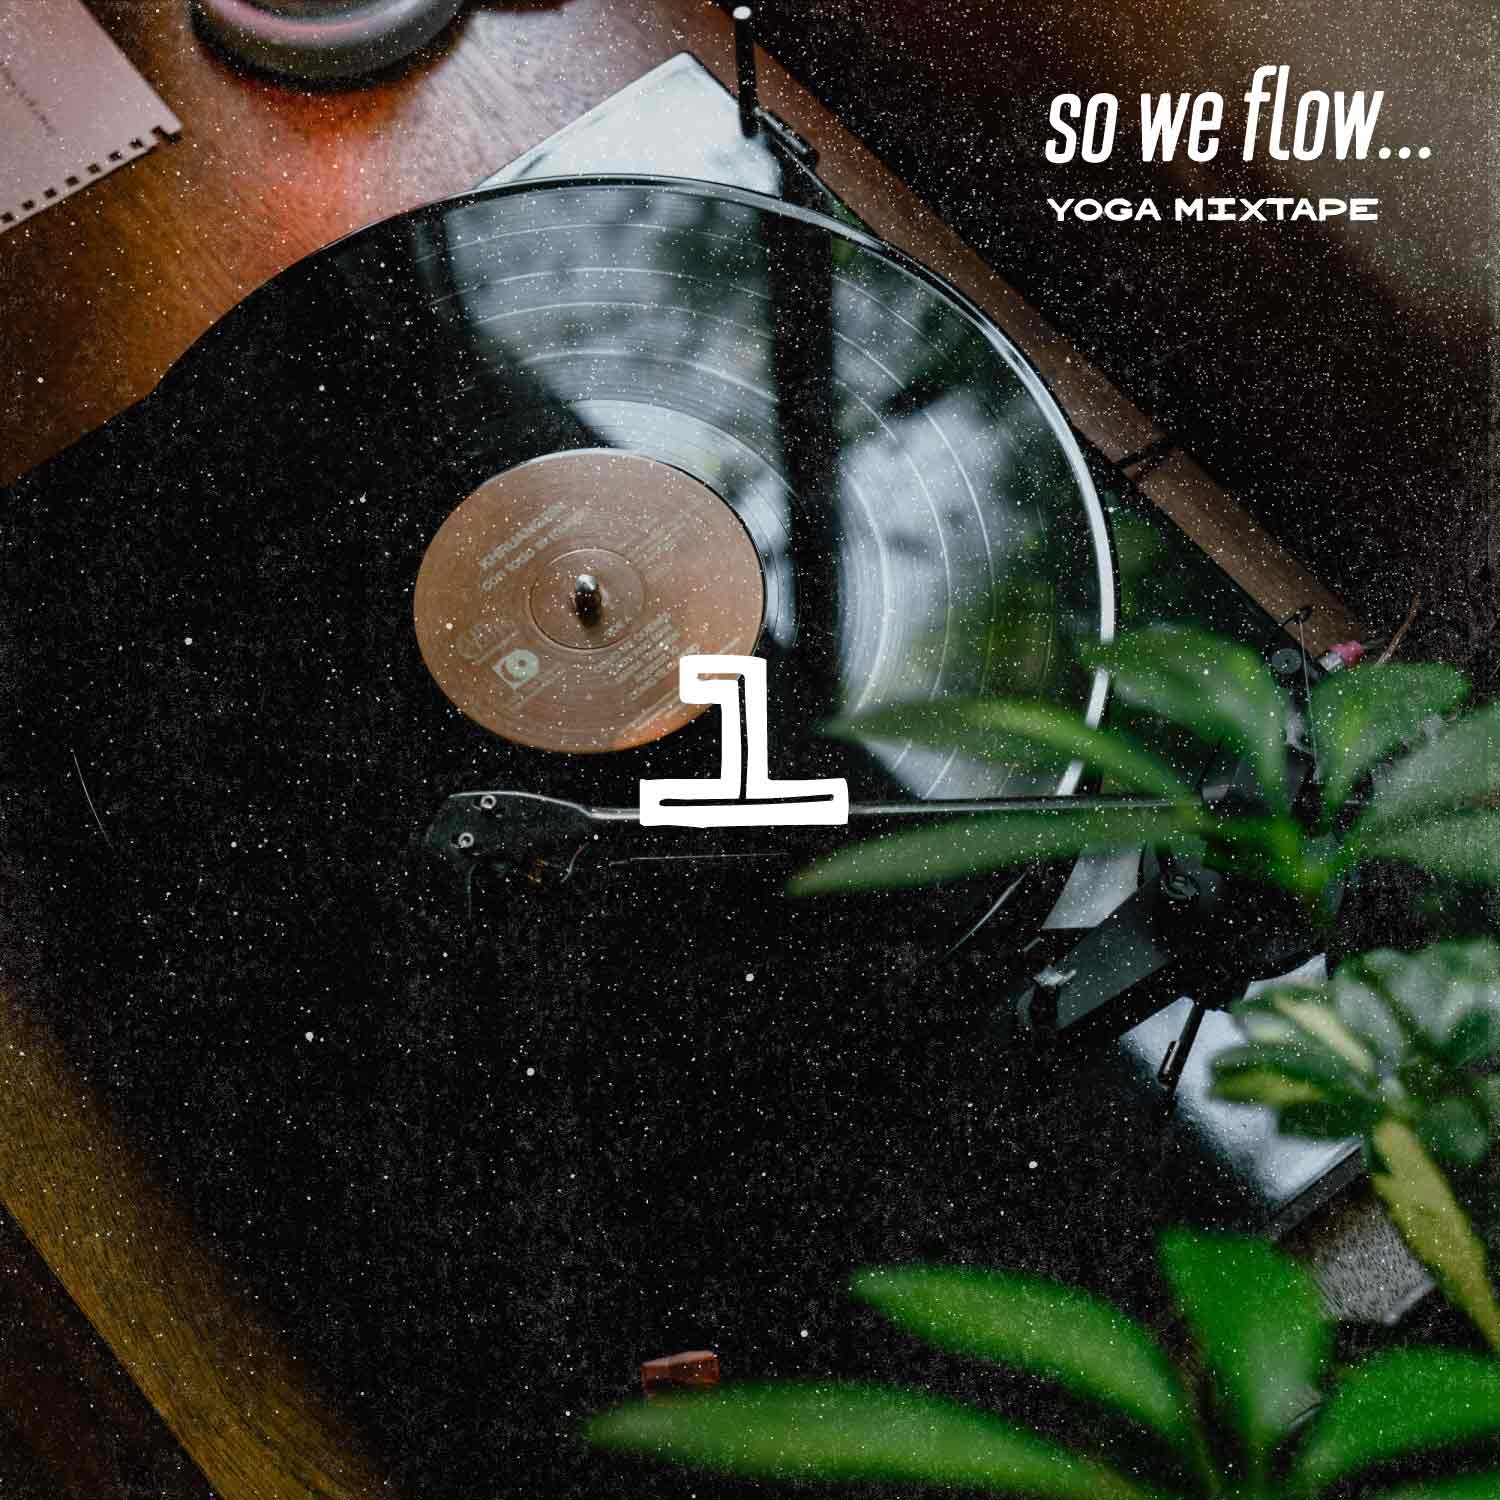 so we flow... Yoga mixtape - 07/17 - Lift off - album art